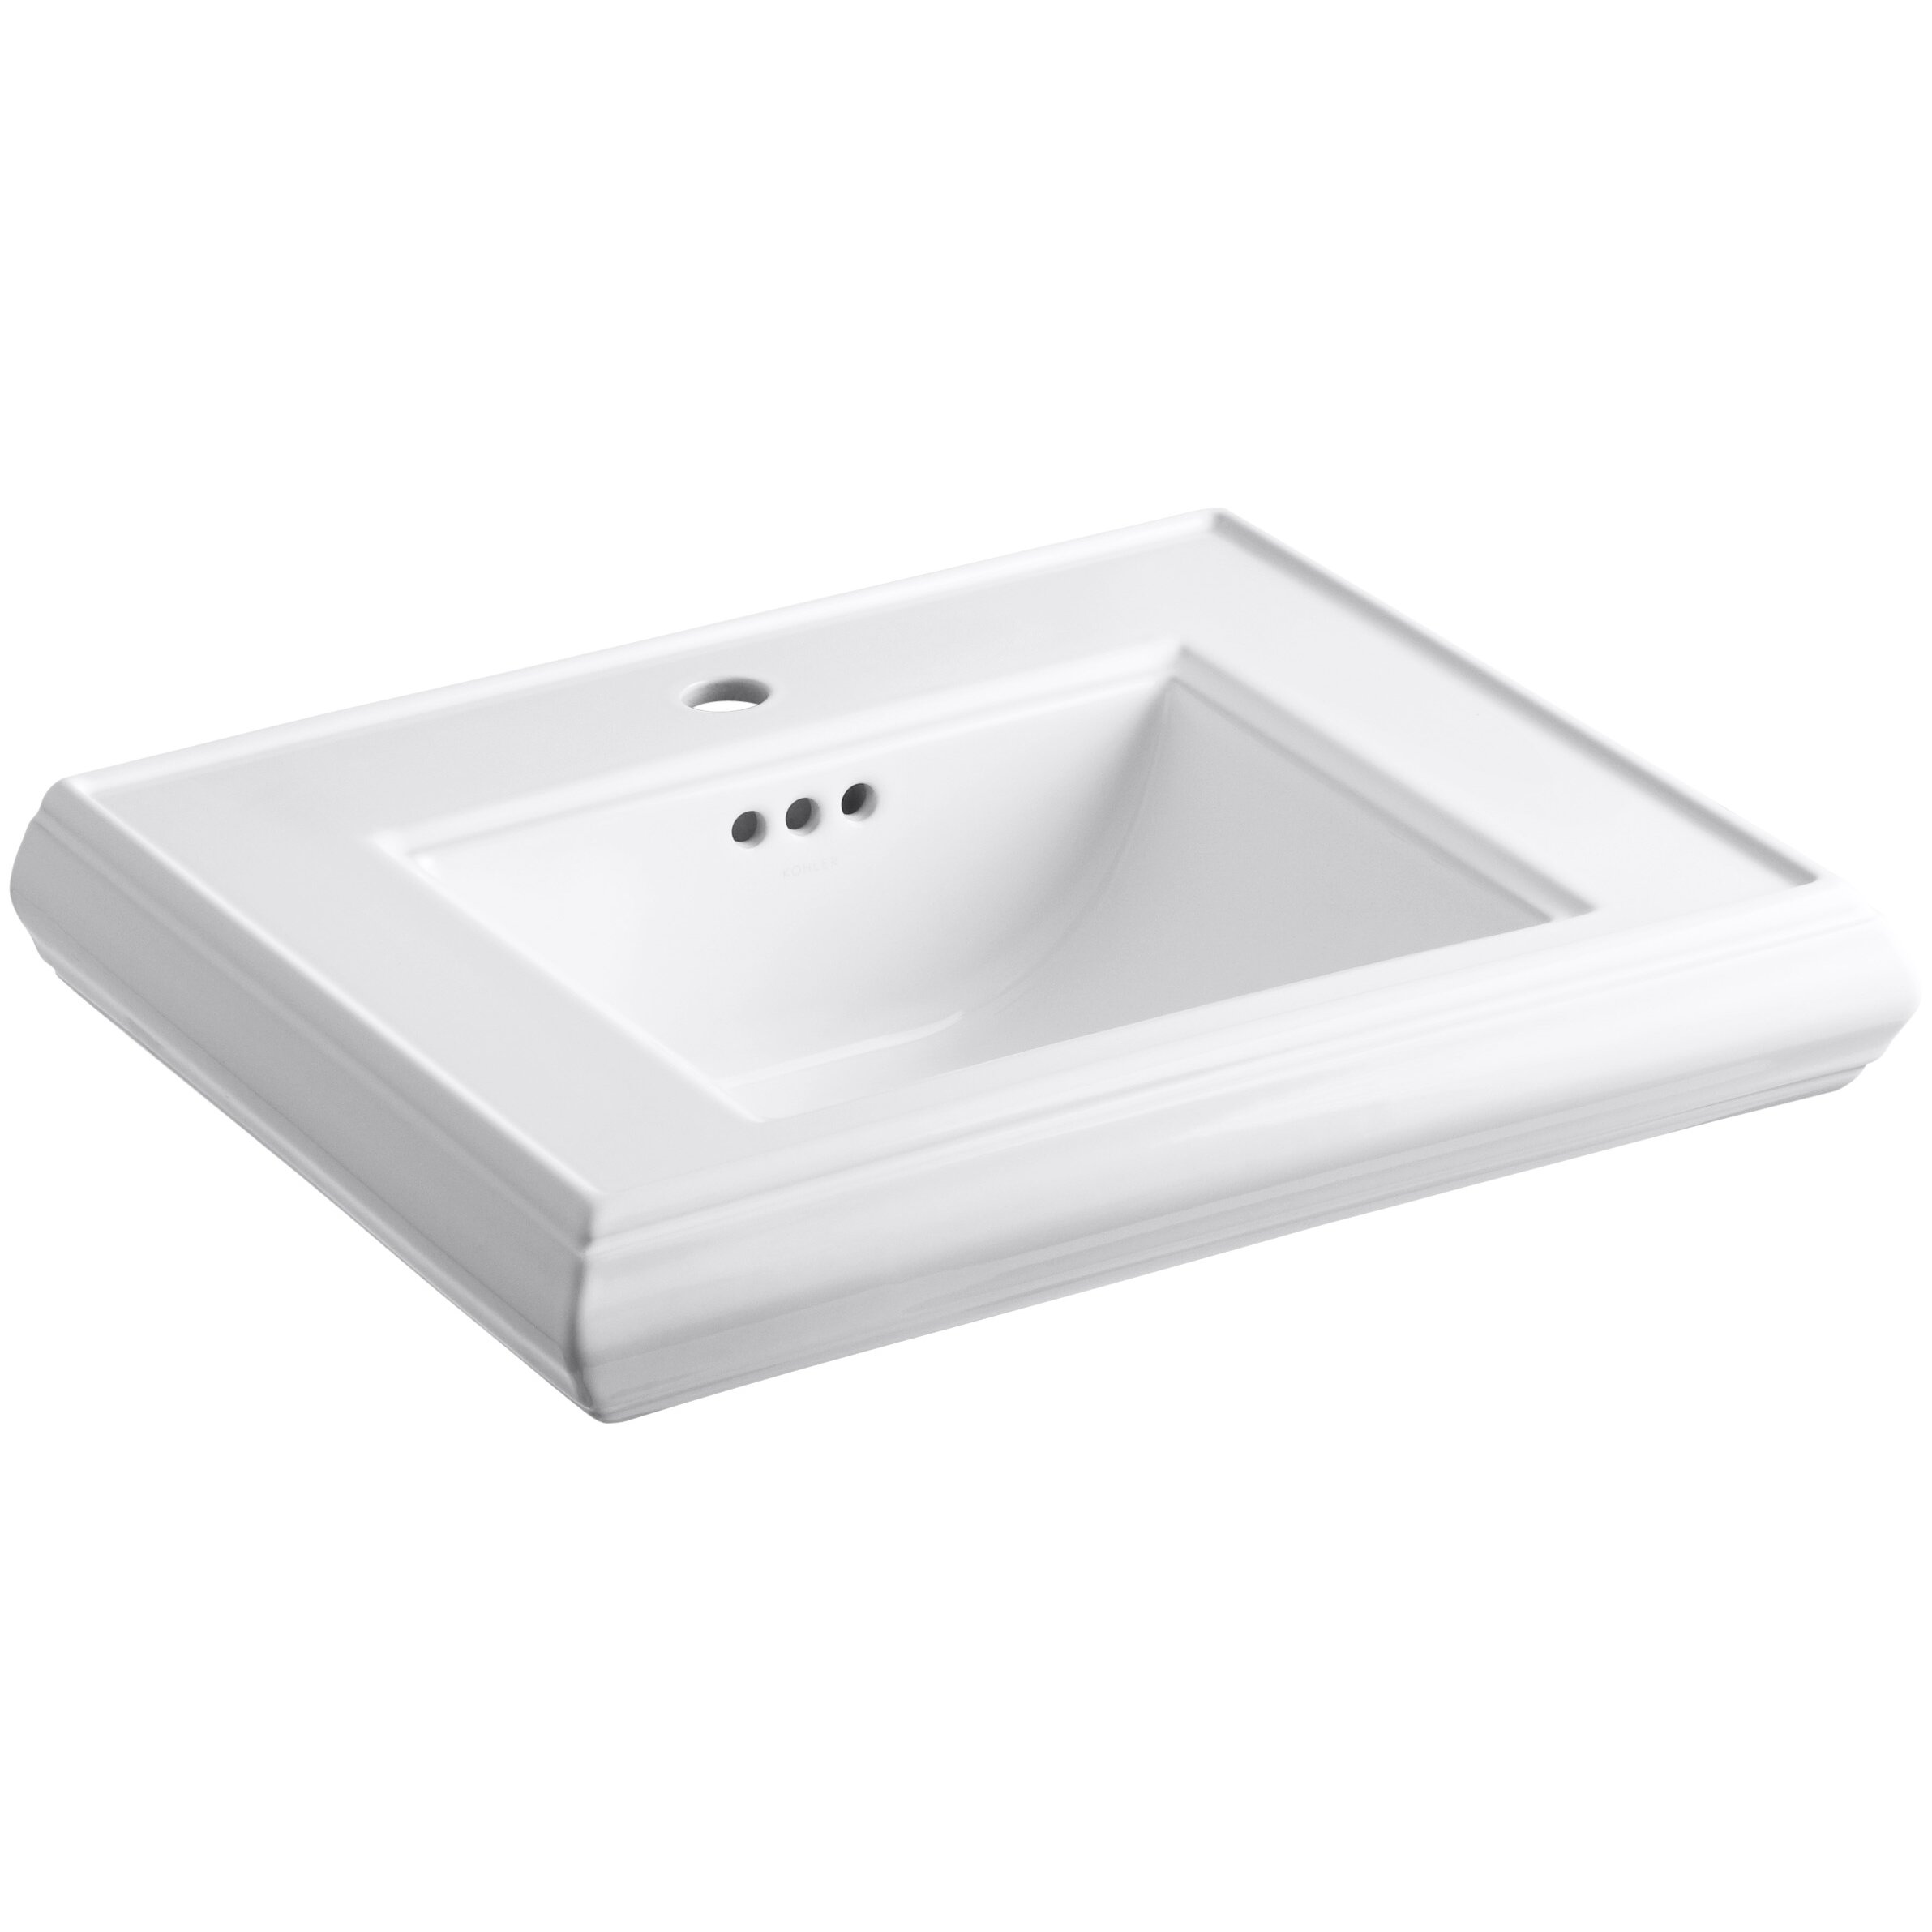 Kohler Memoirs 24 Pedestal Sink : Kohler Memoirs Pedestal Bathroom Sink Basin with Single Faucet Hole ...